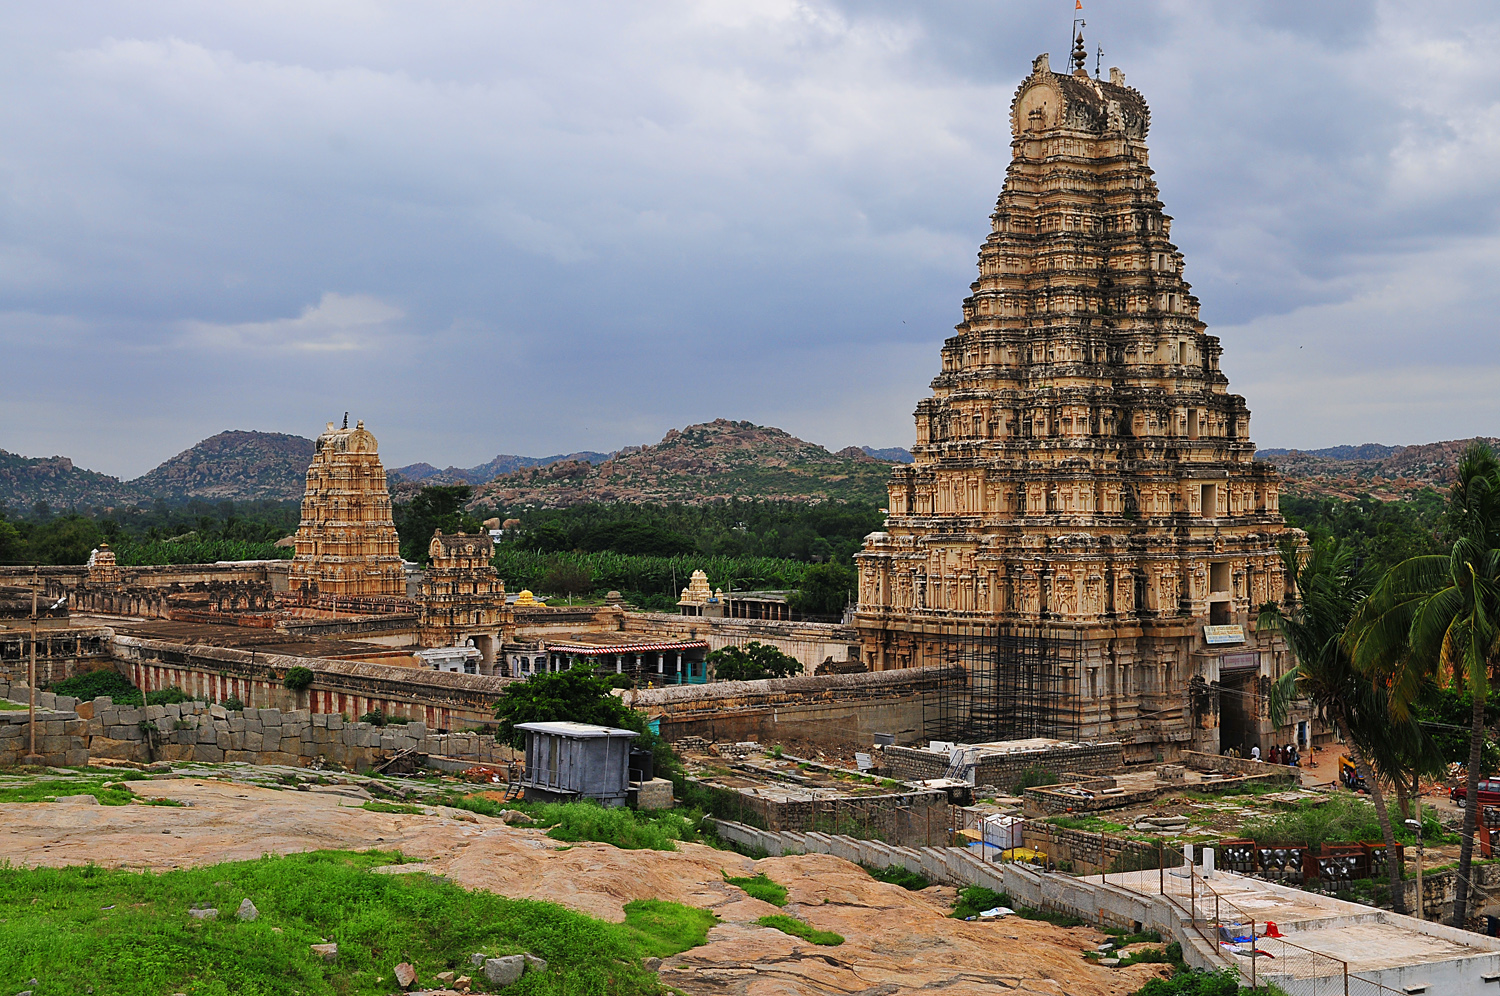 vijaynagar kingdom The kingdom of vijayanagar was founded by harihara and bukka, two of five brothers (surnamed sangama) who had served in the administrations of both kakatiya and kampili before those kingdoms were conquered by the armies of the delhi sultanate in the 1320s.